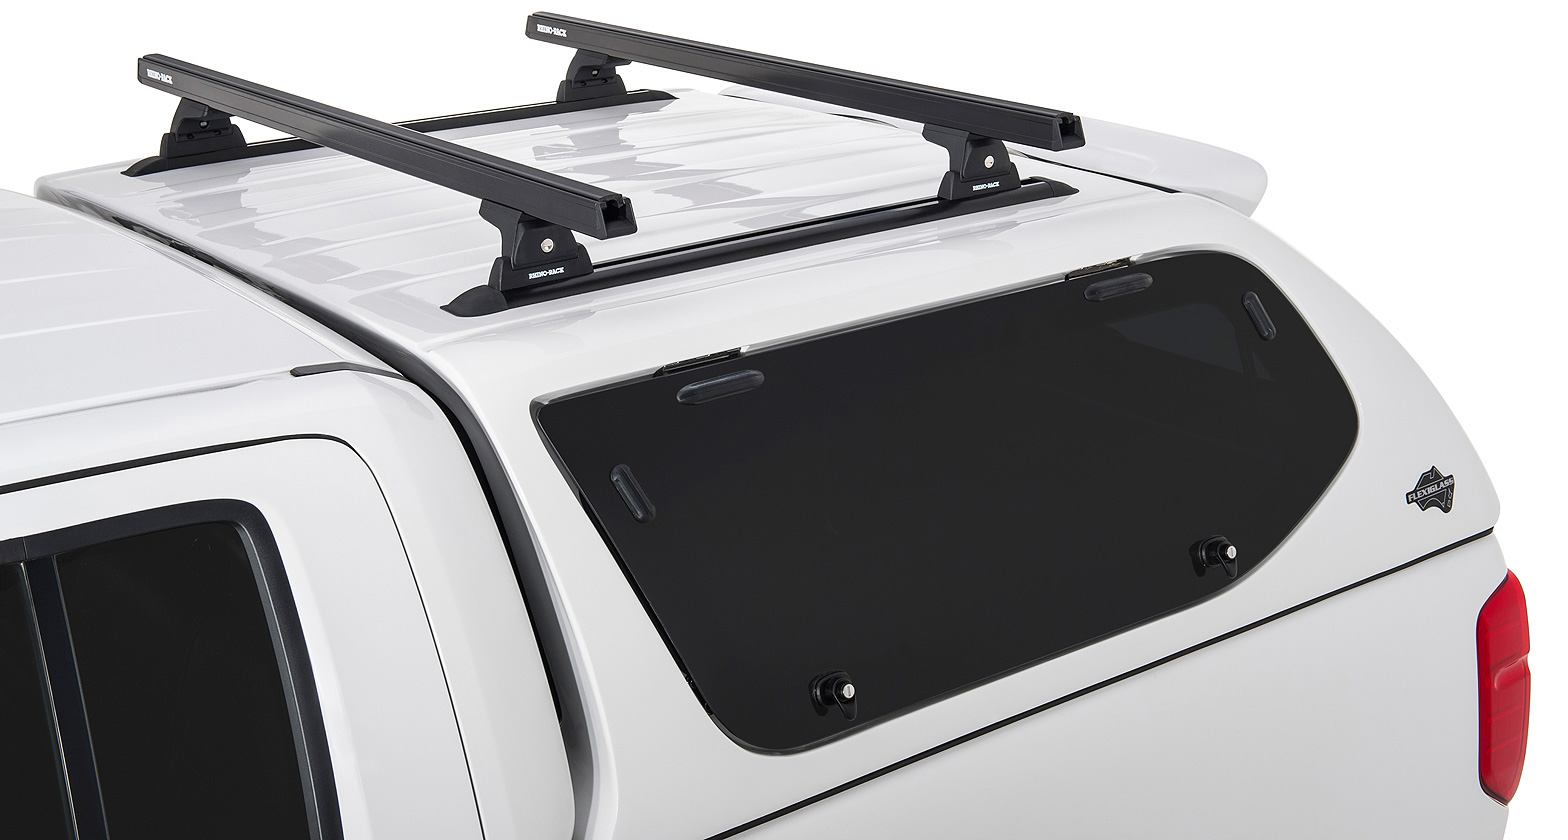 Meanwhile, VMN also has 150kg canopy heavy duty racks to support your vehicle's framework.